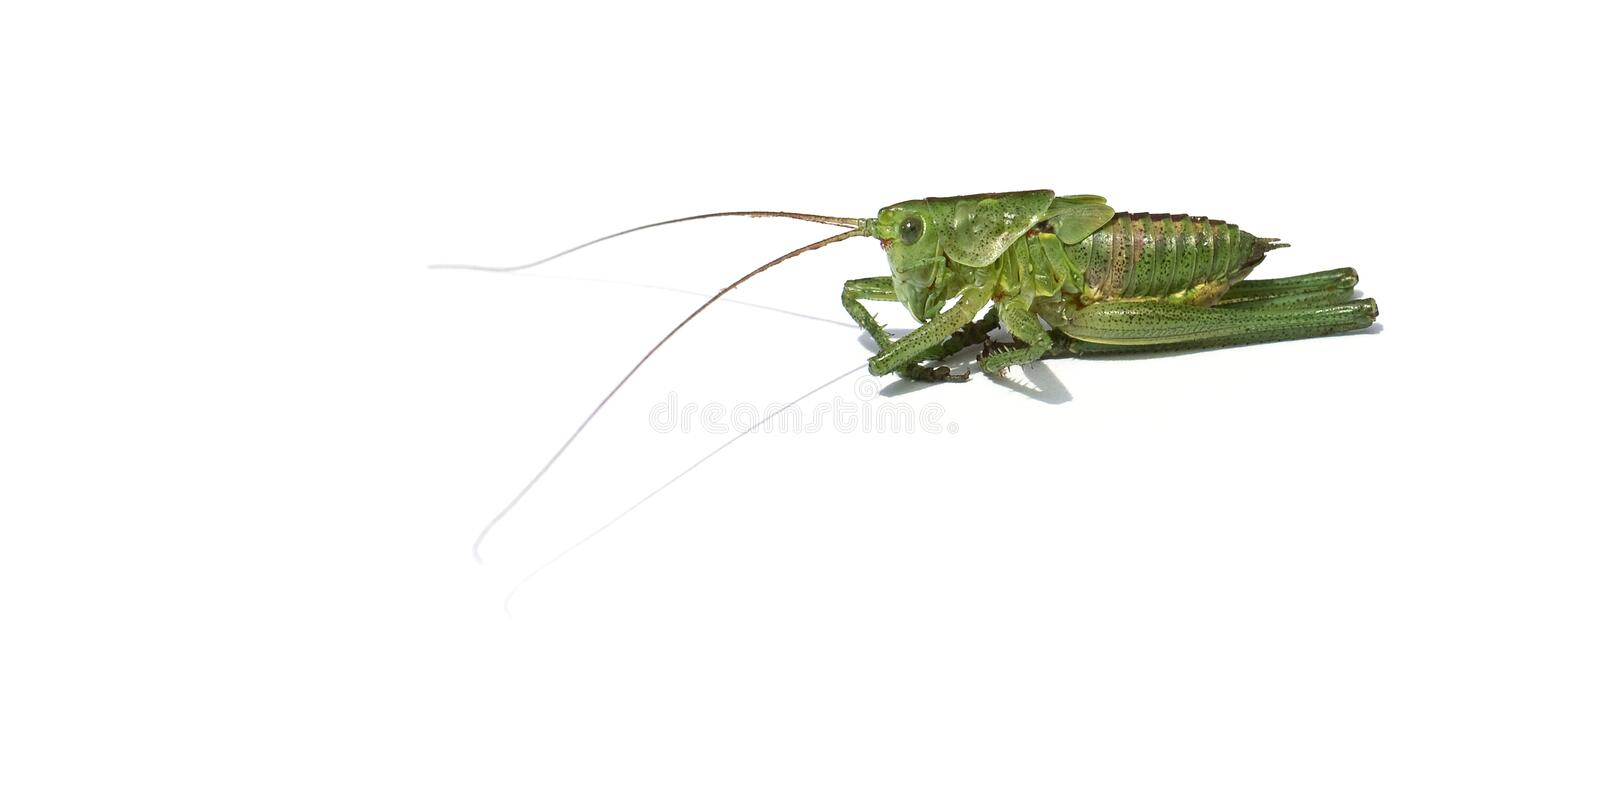 Green grasshopper isolated on white background stock photography